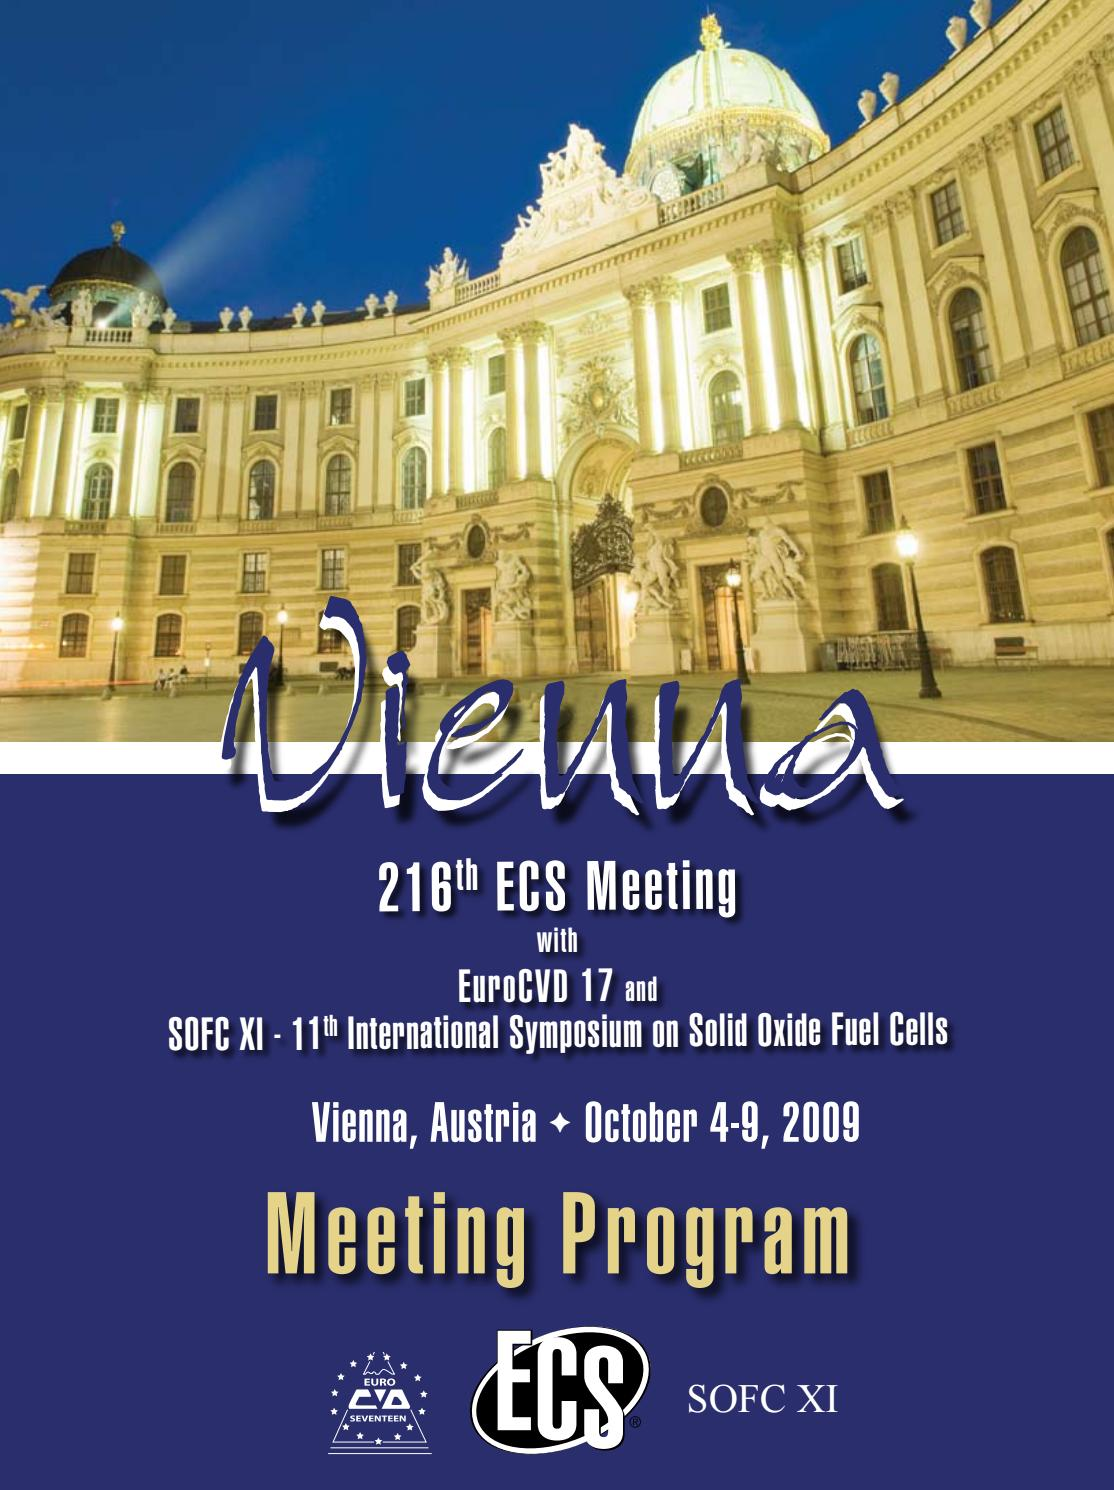 Sol Pvc Uni 216th Ecs Meeting Meeting Program By The Electrochemical Society